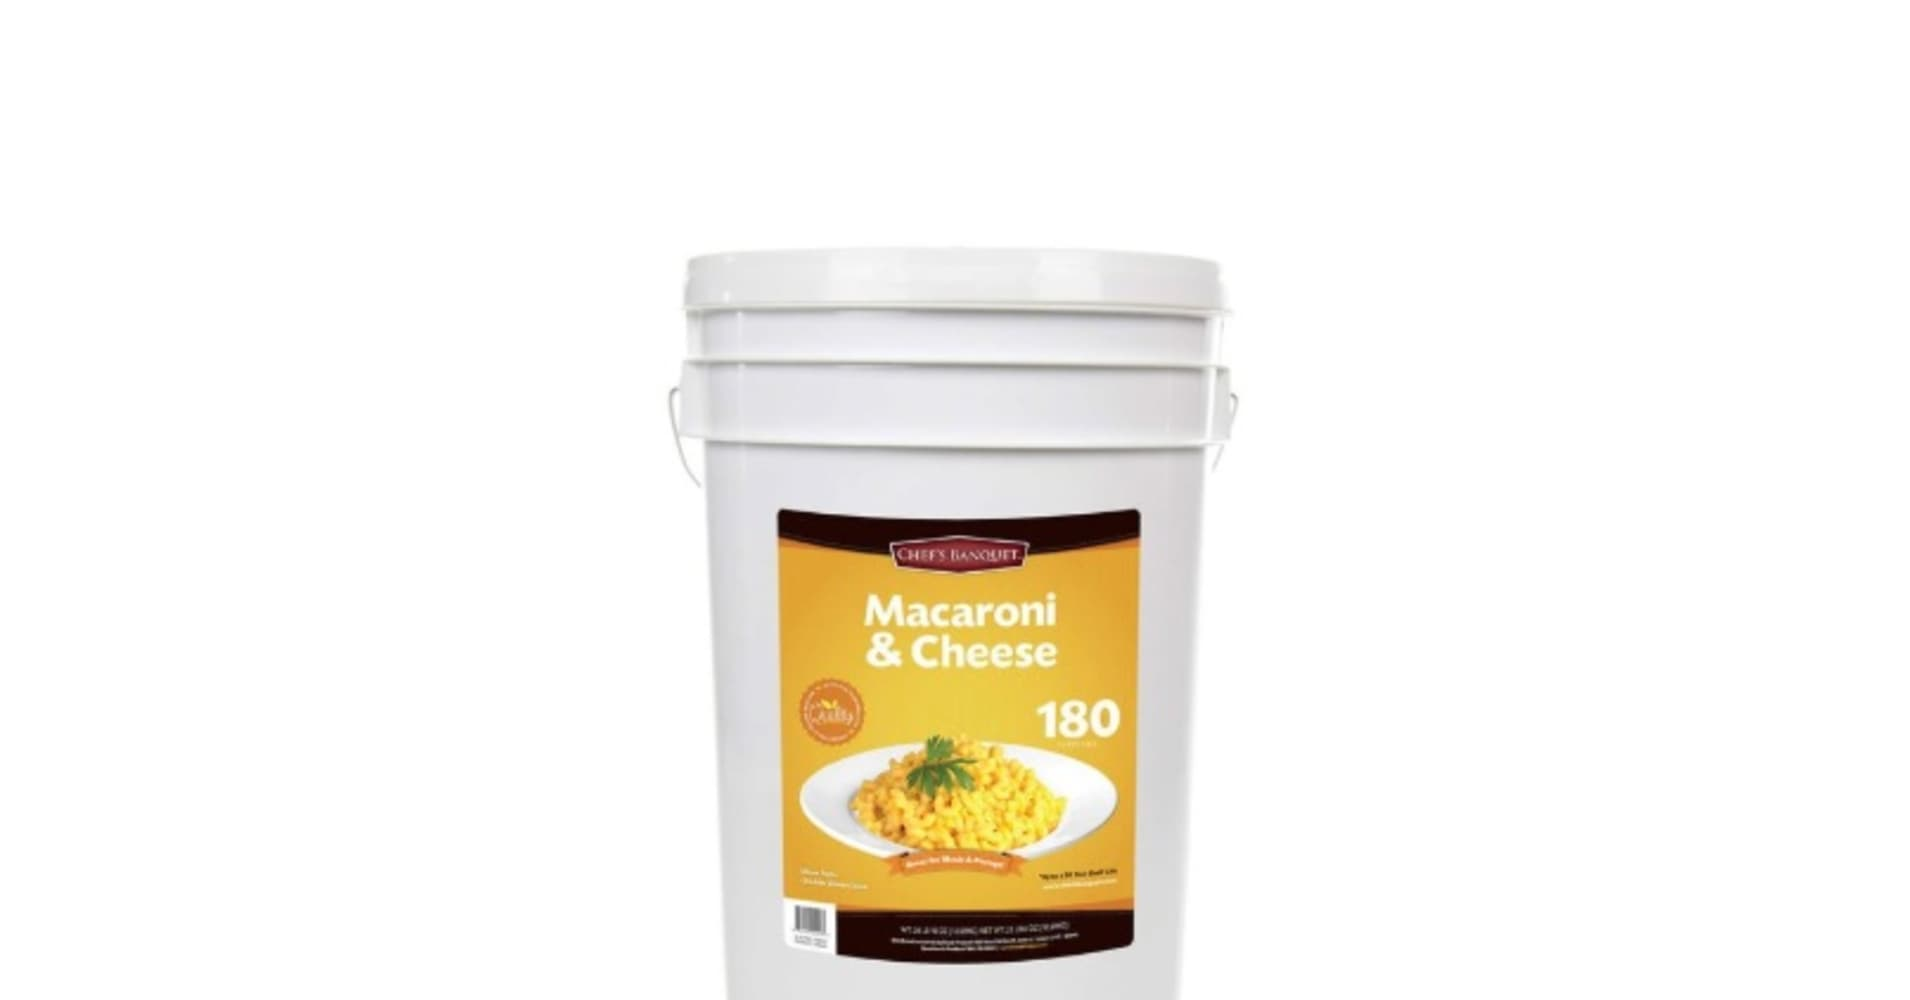 The Chef's Banquet Macaroni & Cheese is $89.99, 27-pounds, and has a 20-year shelf life.